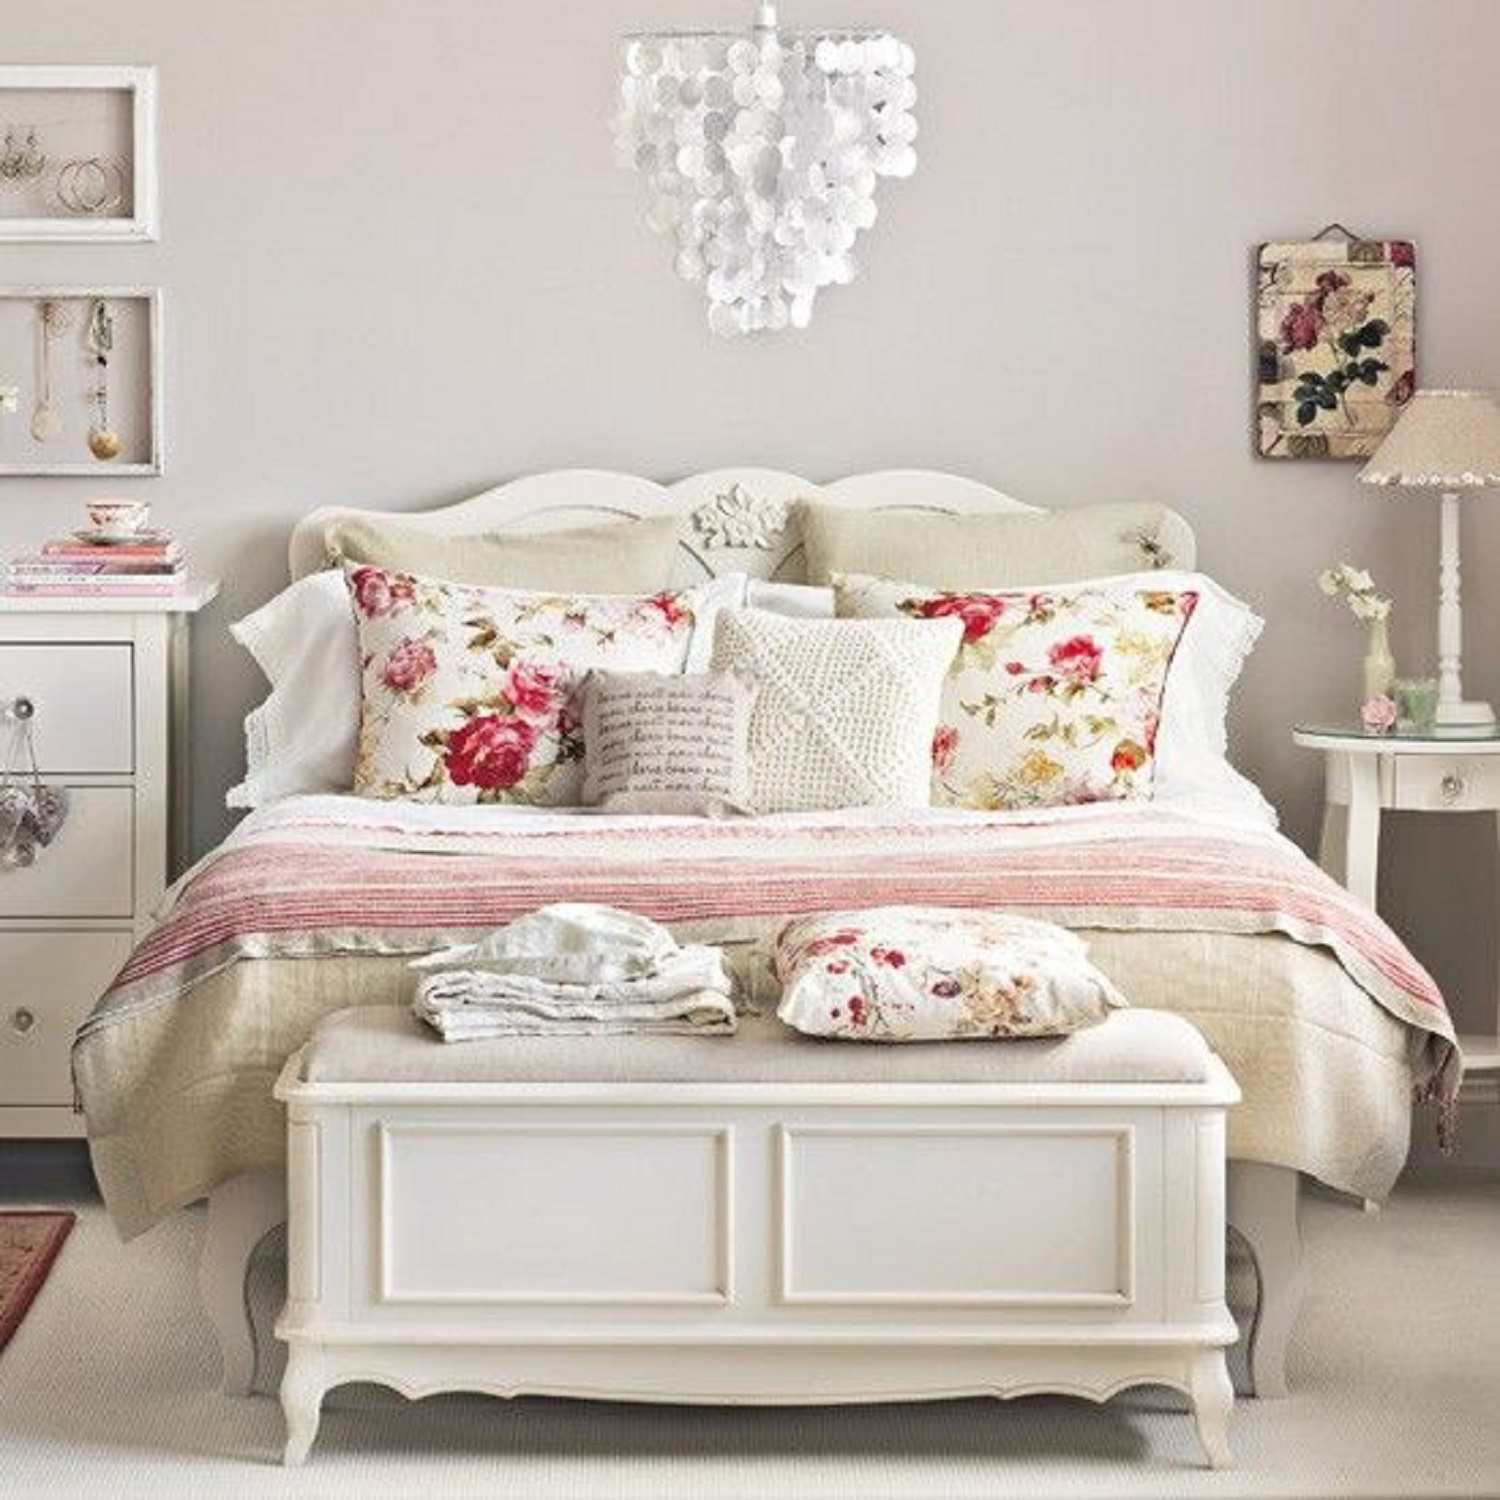 Fabulous Vintage Bedroom Decorating Ideas And Photos within Vintage Bedroom